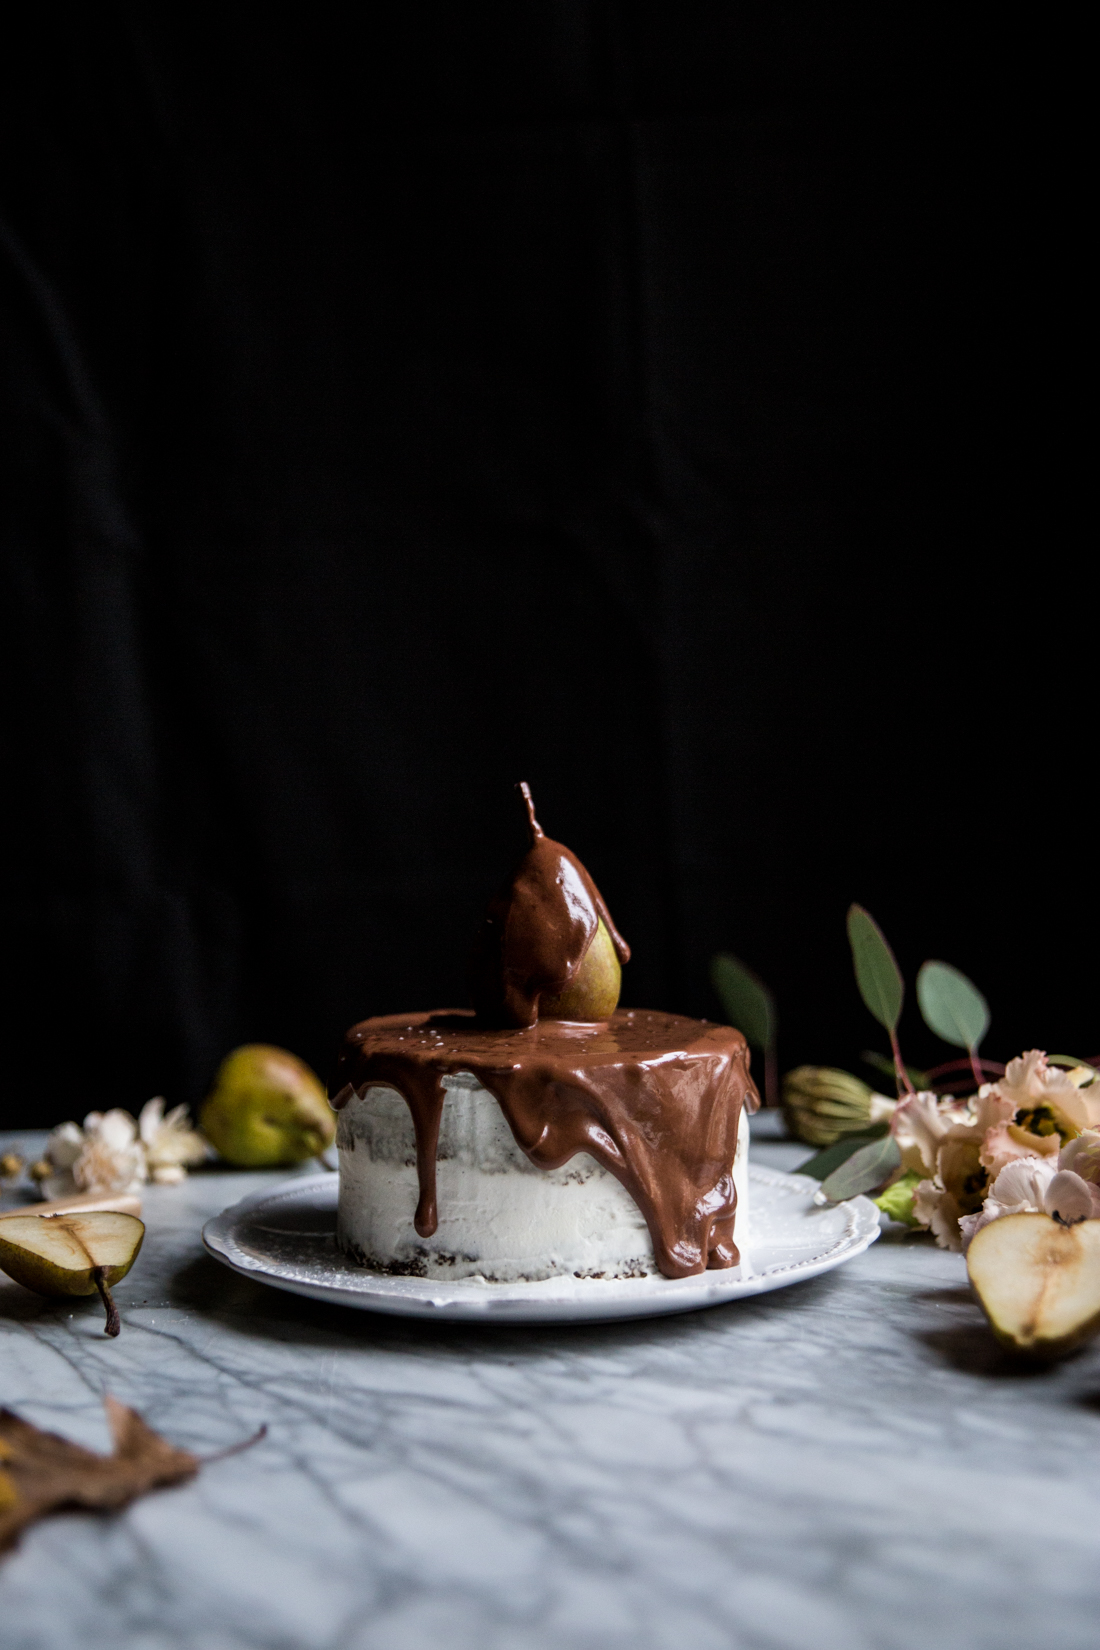 layer-cake-poires-cardamone-glacage-mascarpone-et-vanille-coulant-au-chocolat-ophelies-kitchen-book-ophelie-lauret-9